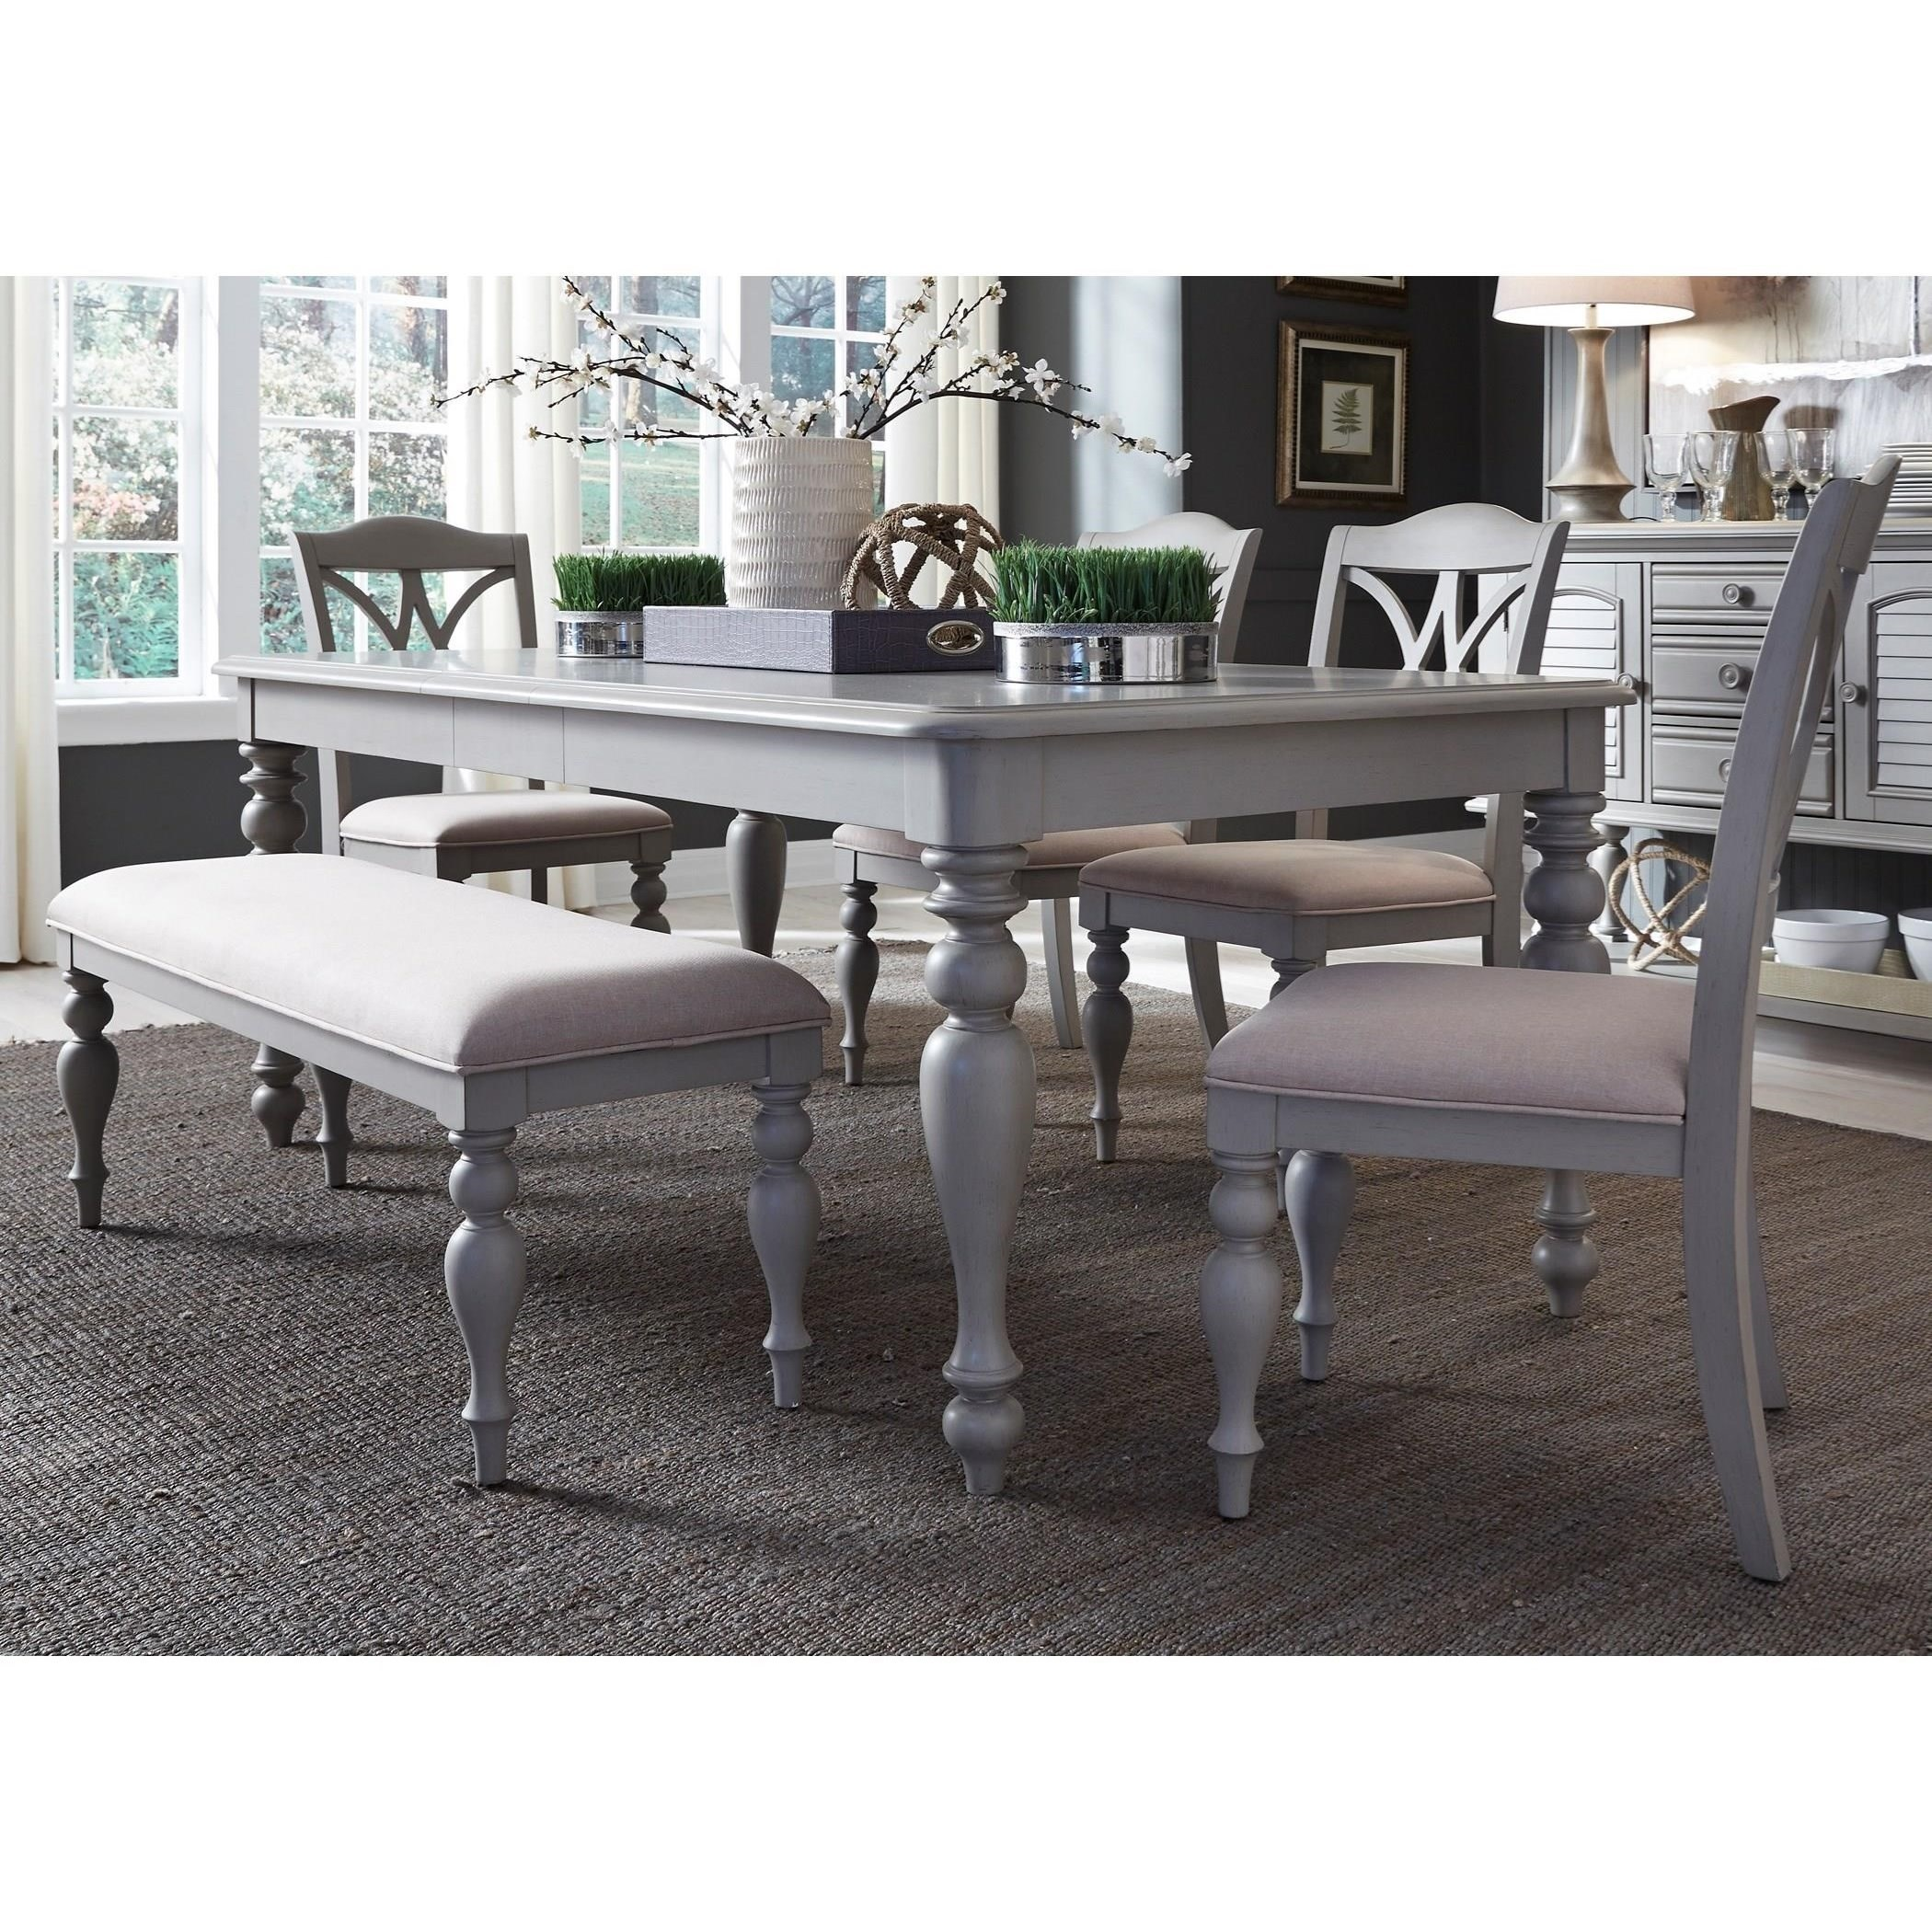 Summer House Dining 6 Piece Rectangular Table Set  by Liberty Furniture at Northeast Factory Direct